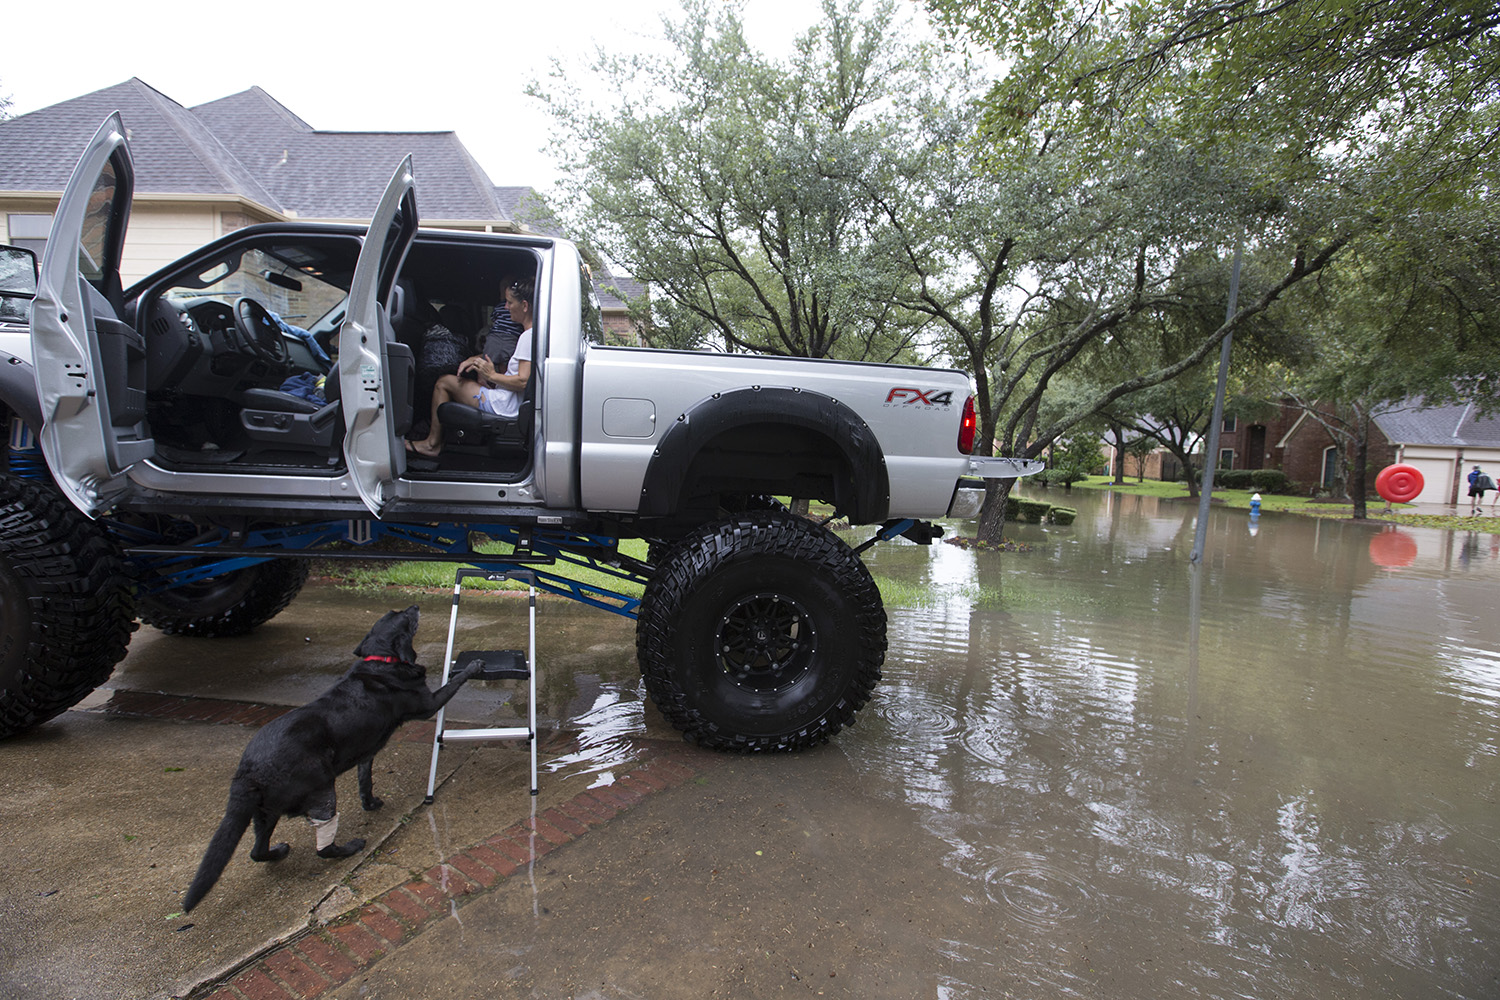 A dog waits to get loaded with his family into Chris Ginter's truck in Houston on Tuesday, Aug 29, 2017. Ginter is helping evacuate people from their flooded neighborhood near the Buffalo Bayou.